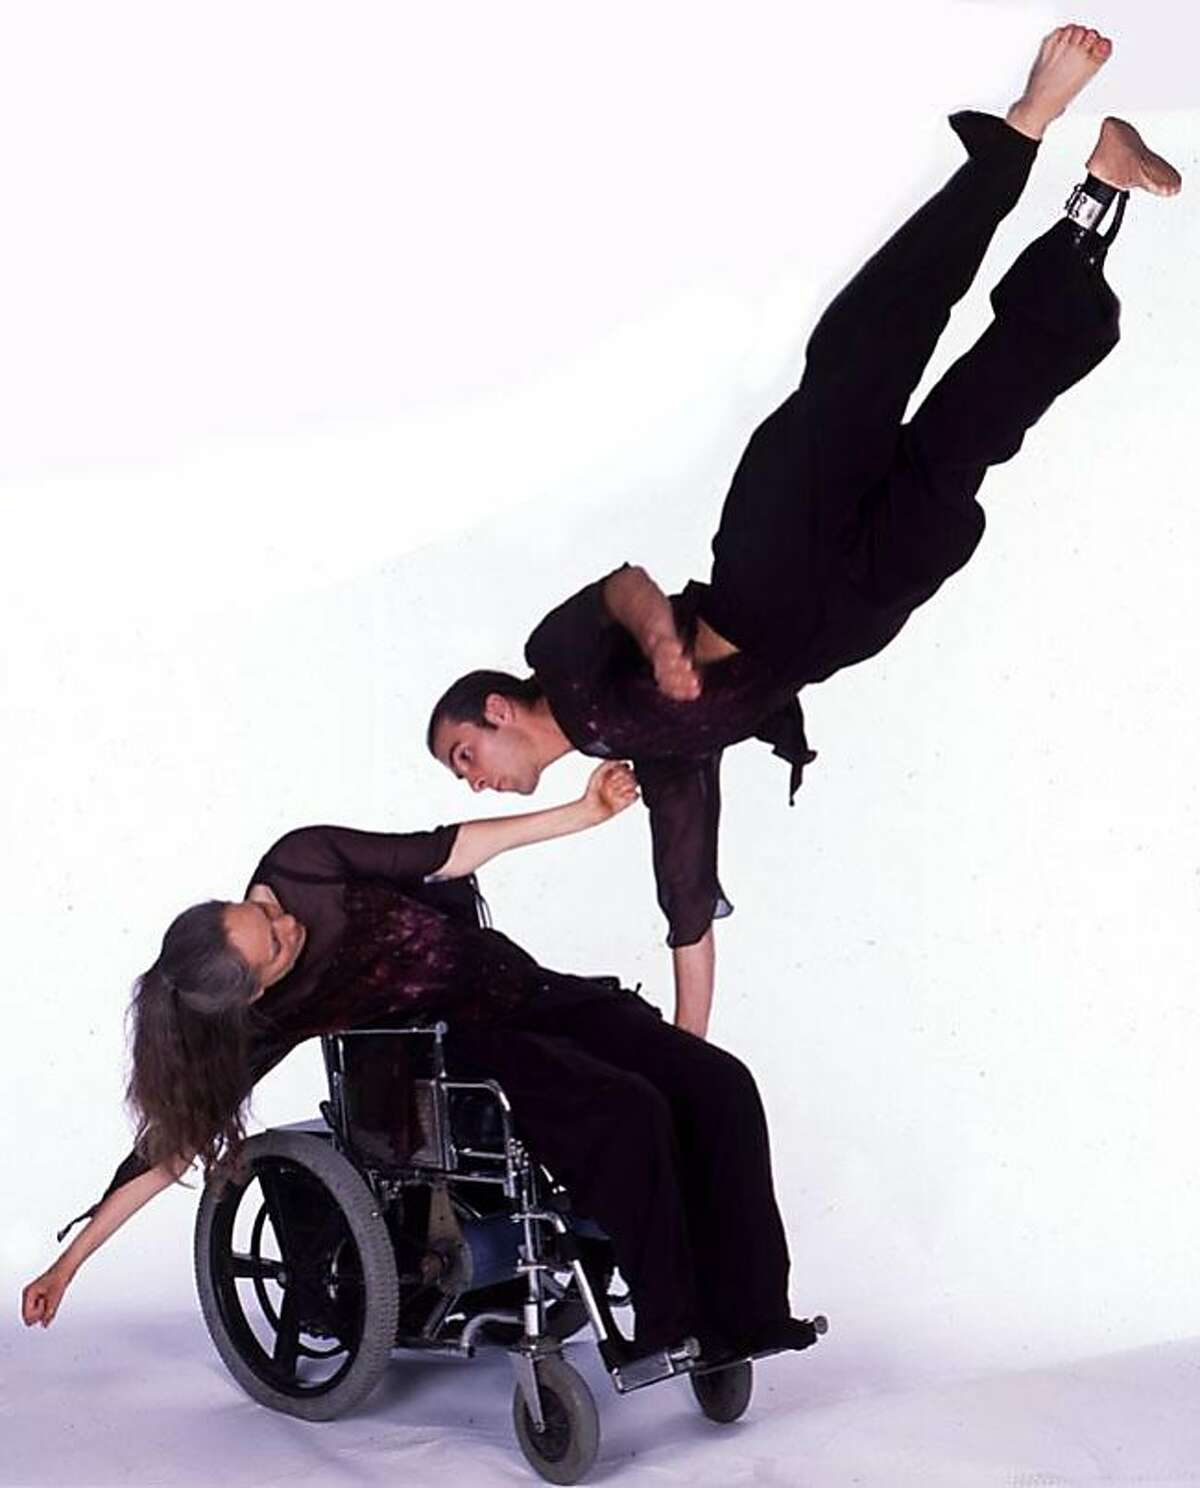 """Judith Smith and Jacques Poulin-Denis of the Axis Dance Company demonstrate a phrase of movement from """"El Ultimo Adios,"""" a dance the Oakland troupe will perform at the coming """"Ever widening Circle"""" benefit ; Photo credit: Margot Hartford ; on 6/19/02 in ."""